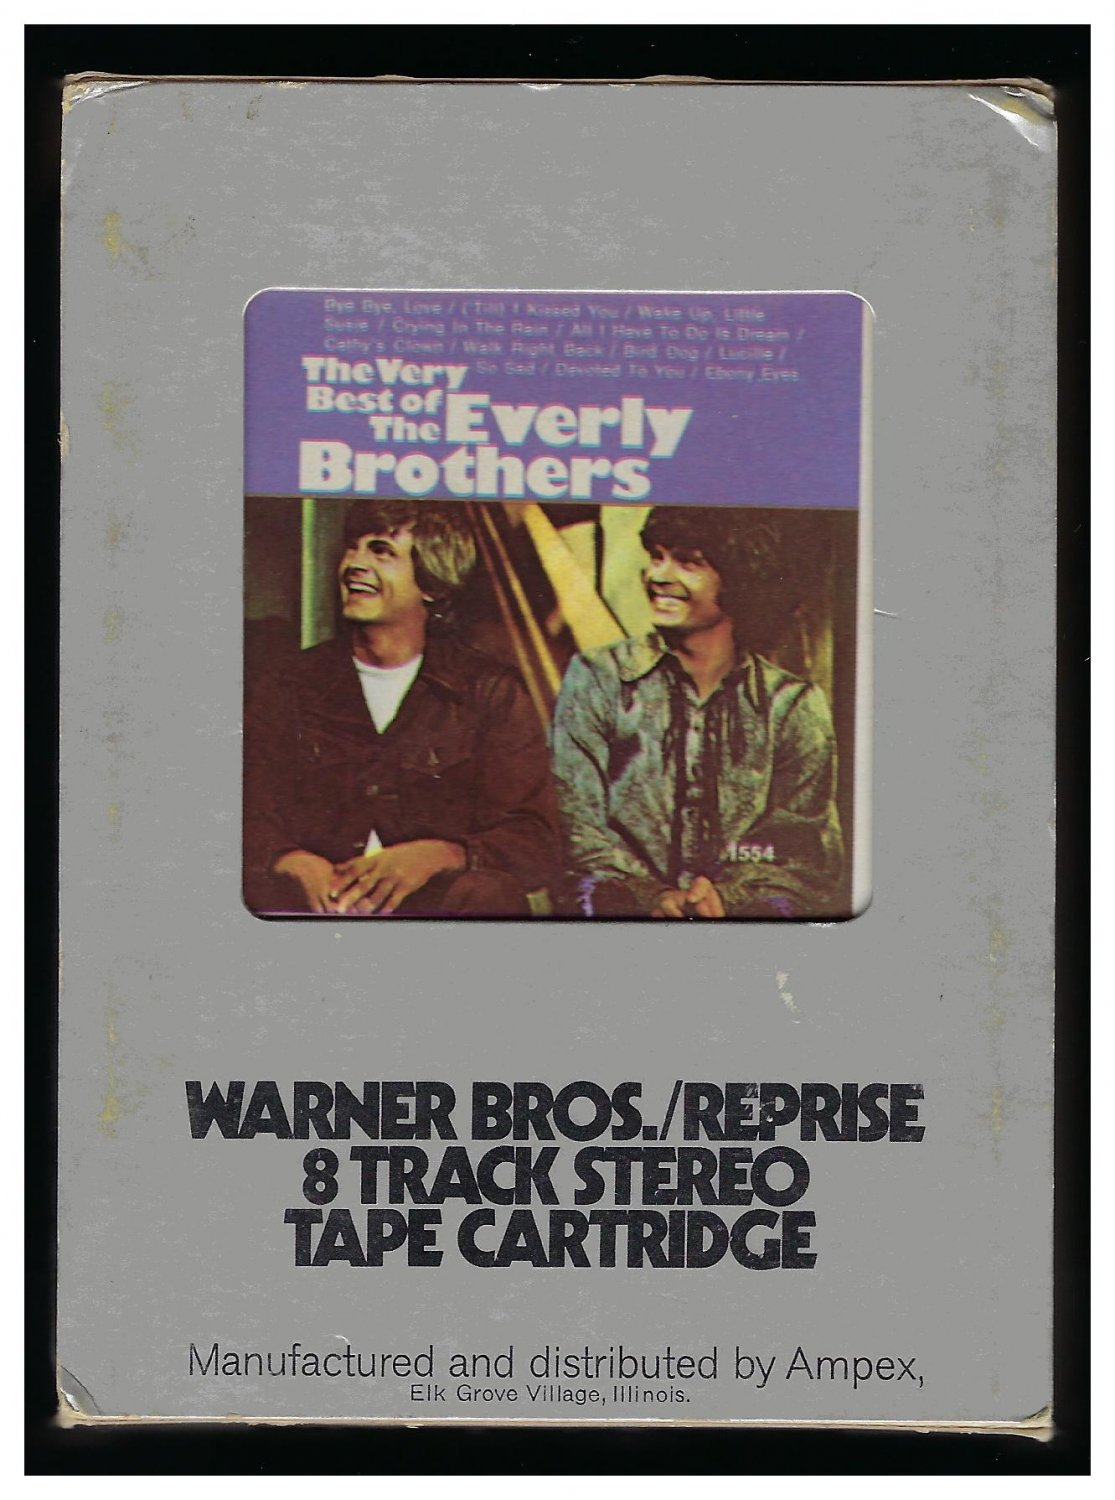 The Everly Brothers - The Very Best Of 1964 WB Re-issue A27 8-TRACK TAPE